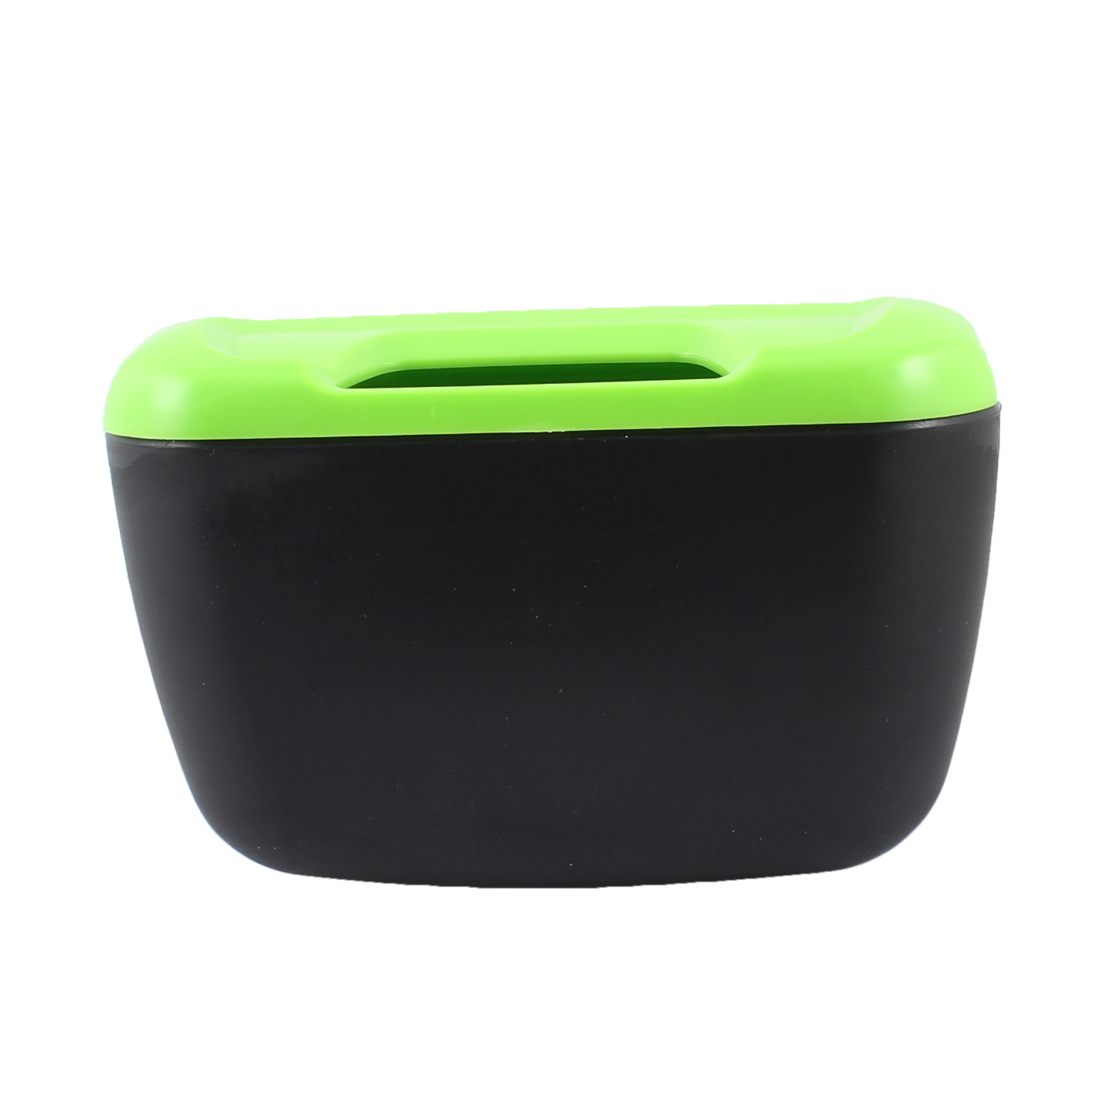 Black Green Plastic Trash Bin Garbage Box Storage for Cars Auto